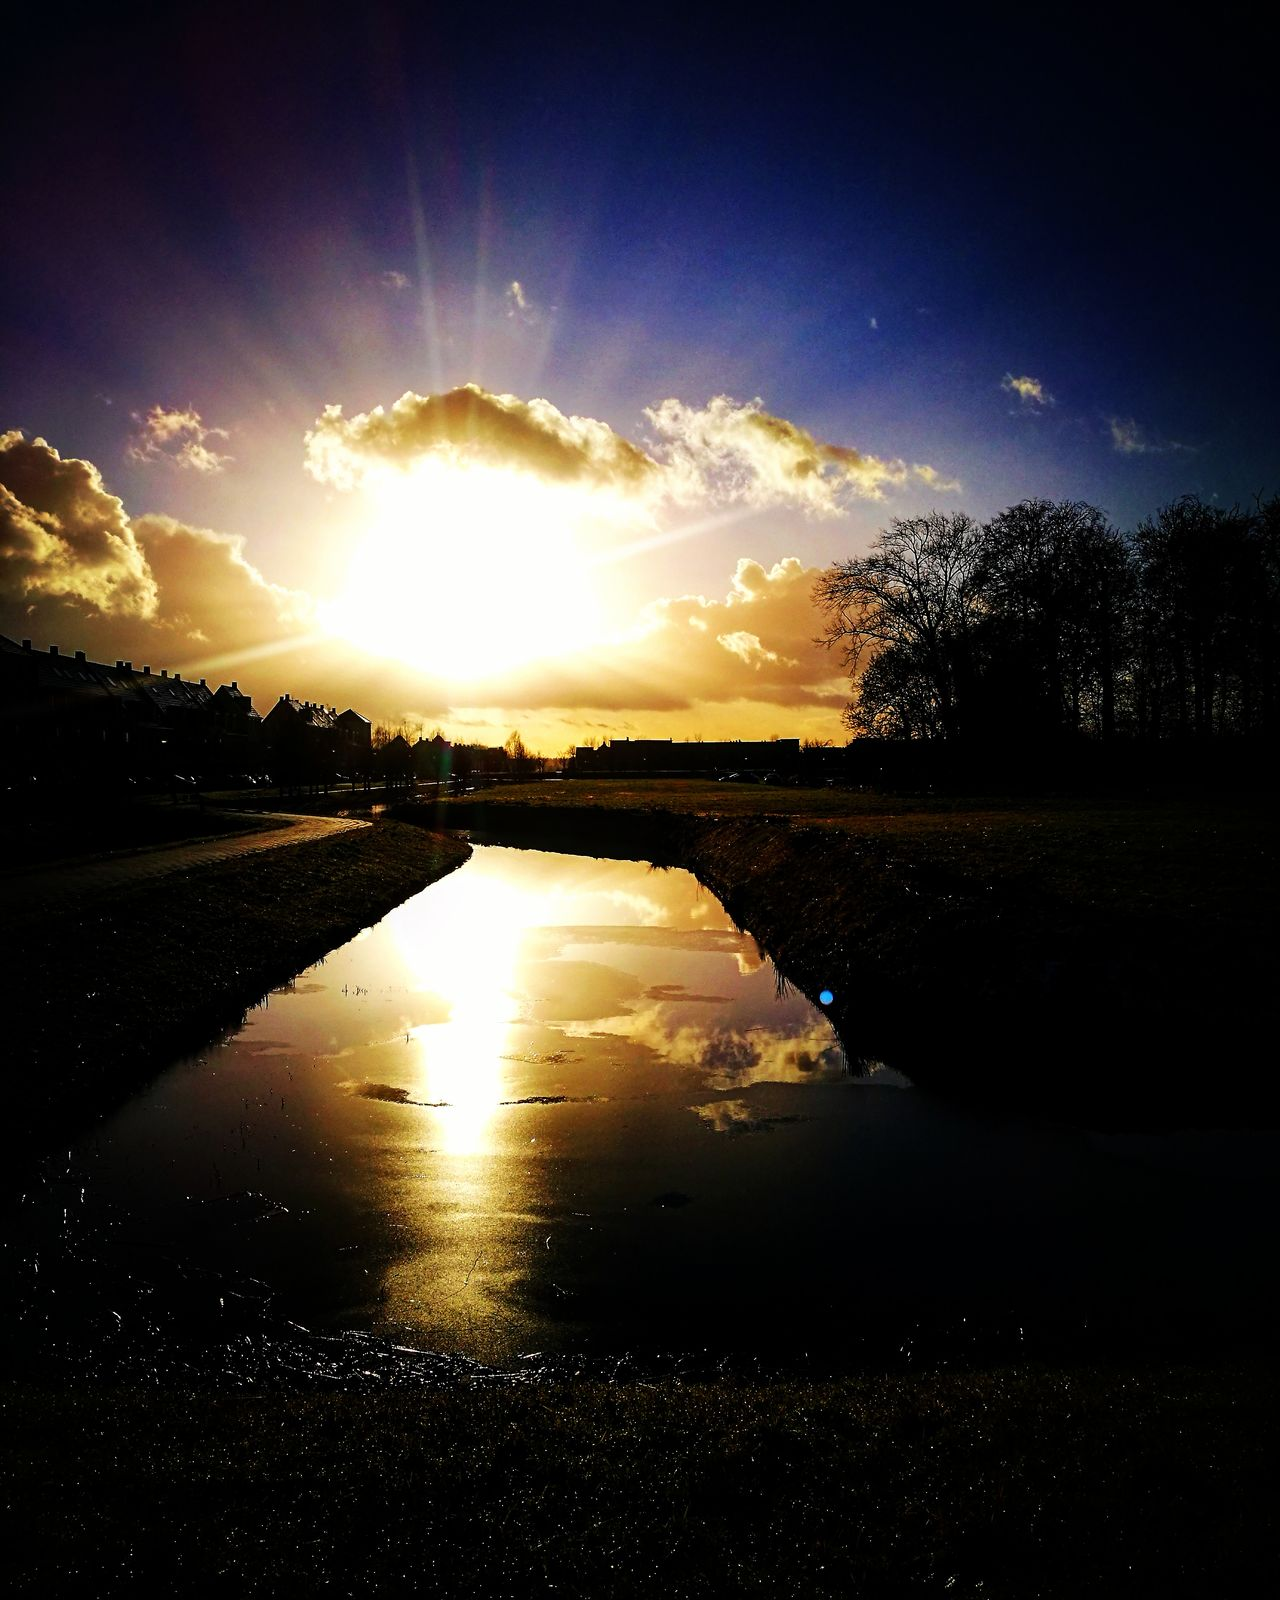 Reflection Water Nature Sky Beauty In Nature No People Day Outdoors Sun Sunlight Sunset_collection Sunshine Blue Blue Sky Cloud Cloud - Sky Clouds And Sky